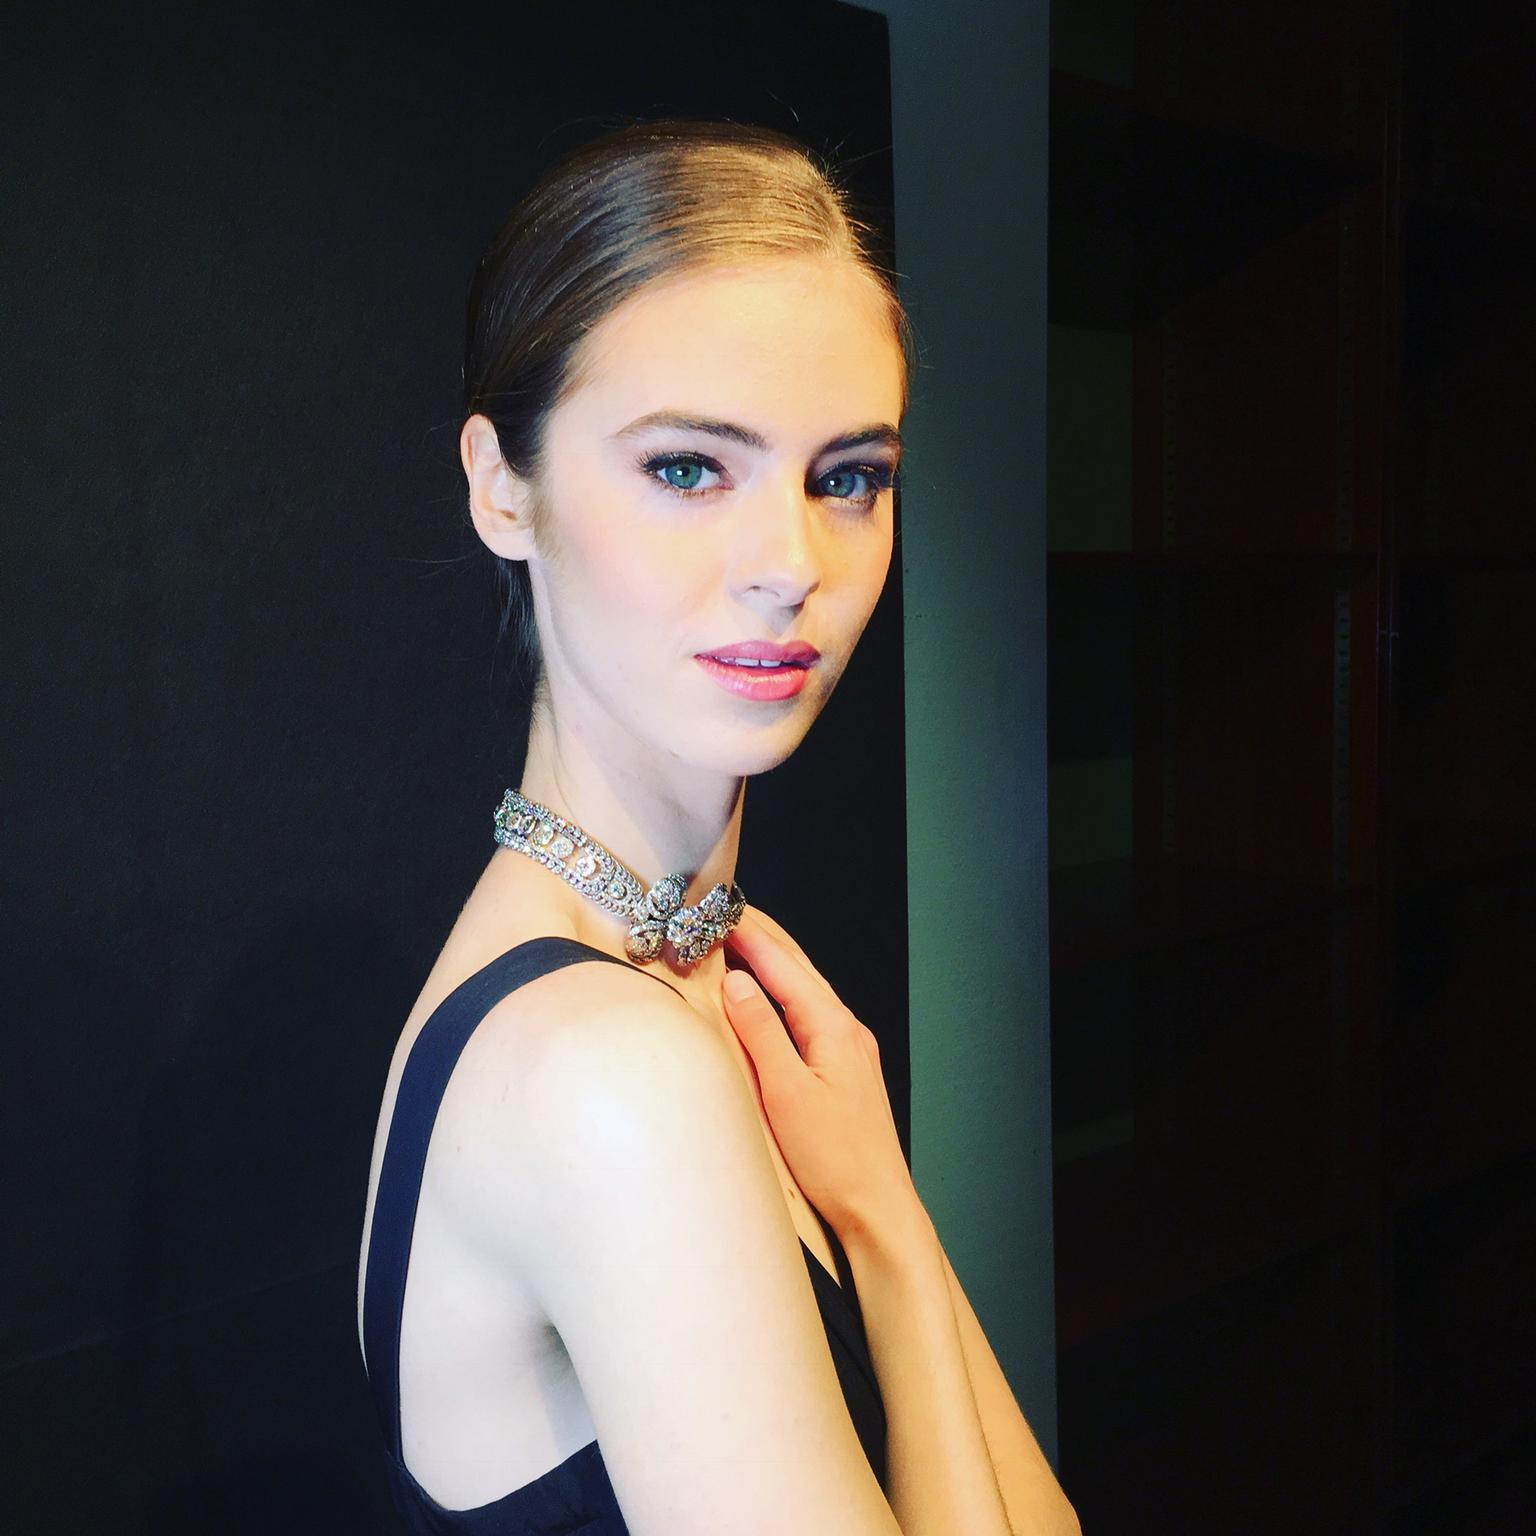 Model wearing Sotheby's Antique diamond necklace